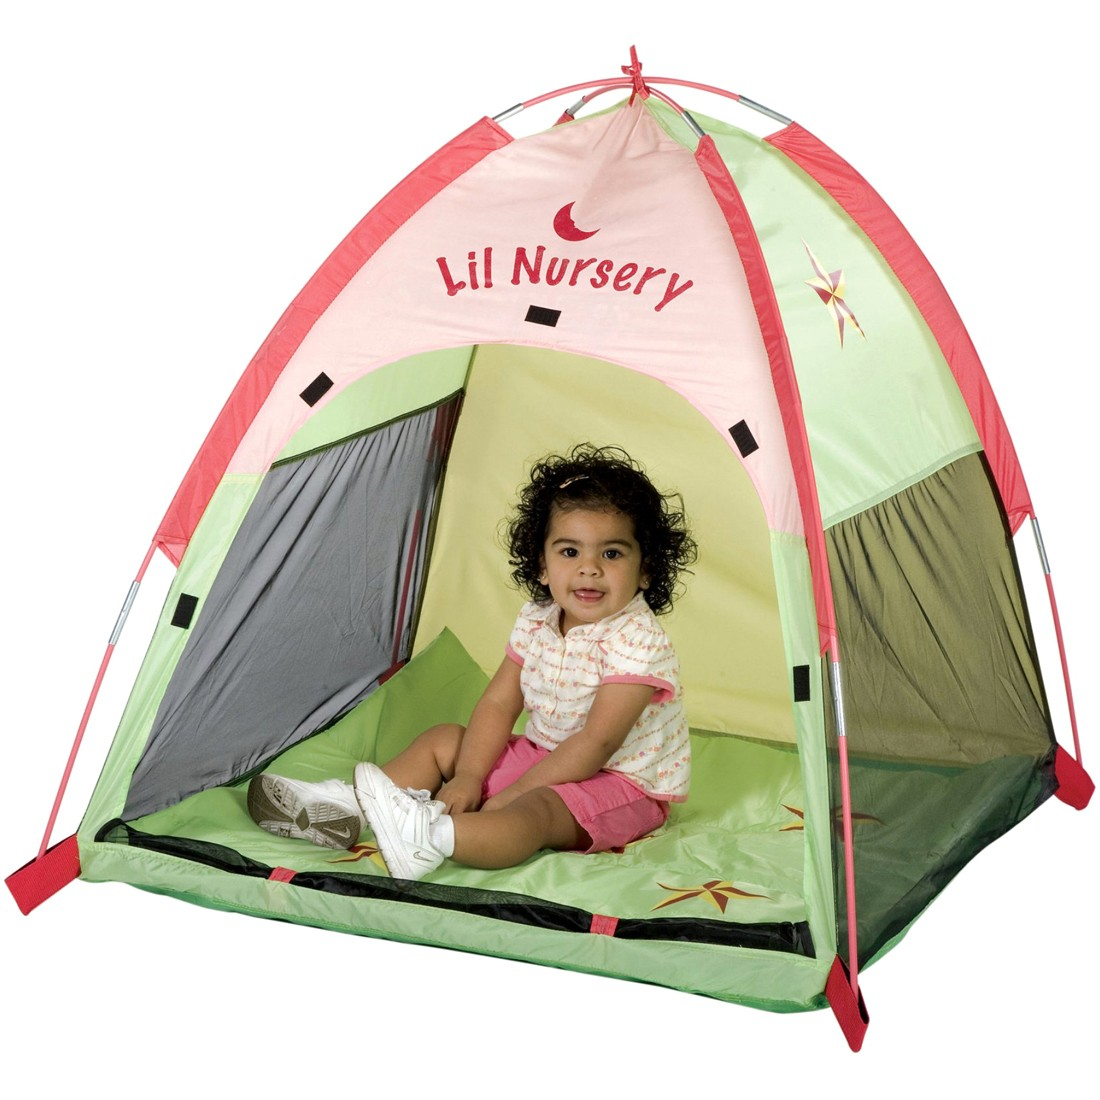 Pacific Play Tents Item #20004 Star Ligh  sc 1 st  Walmart & Pacific Play Tents Item #20004 Star Ligh - Walmart.com